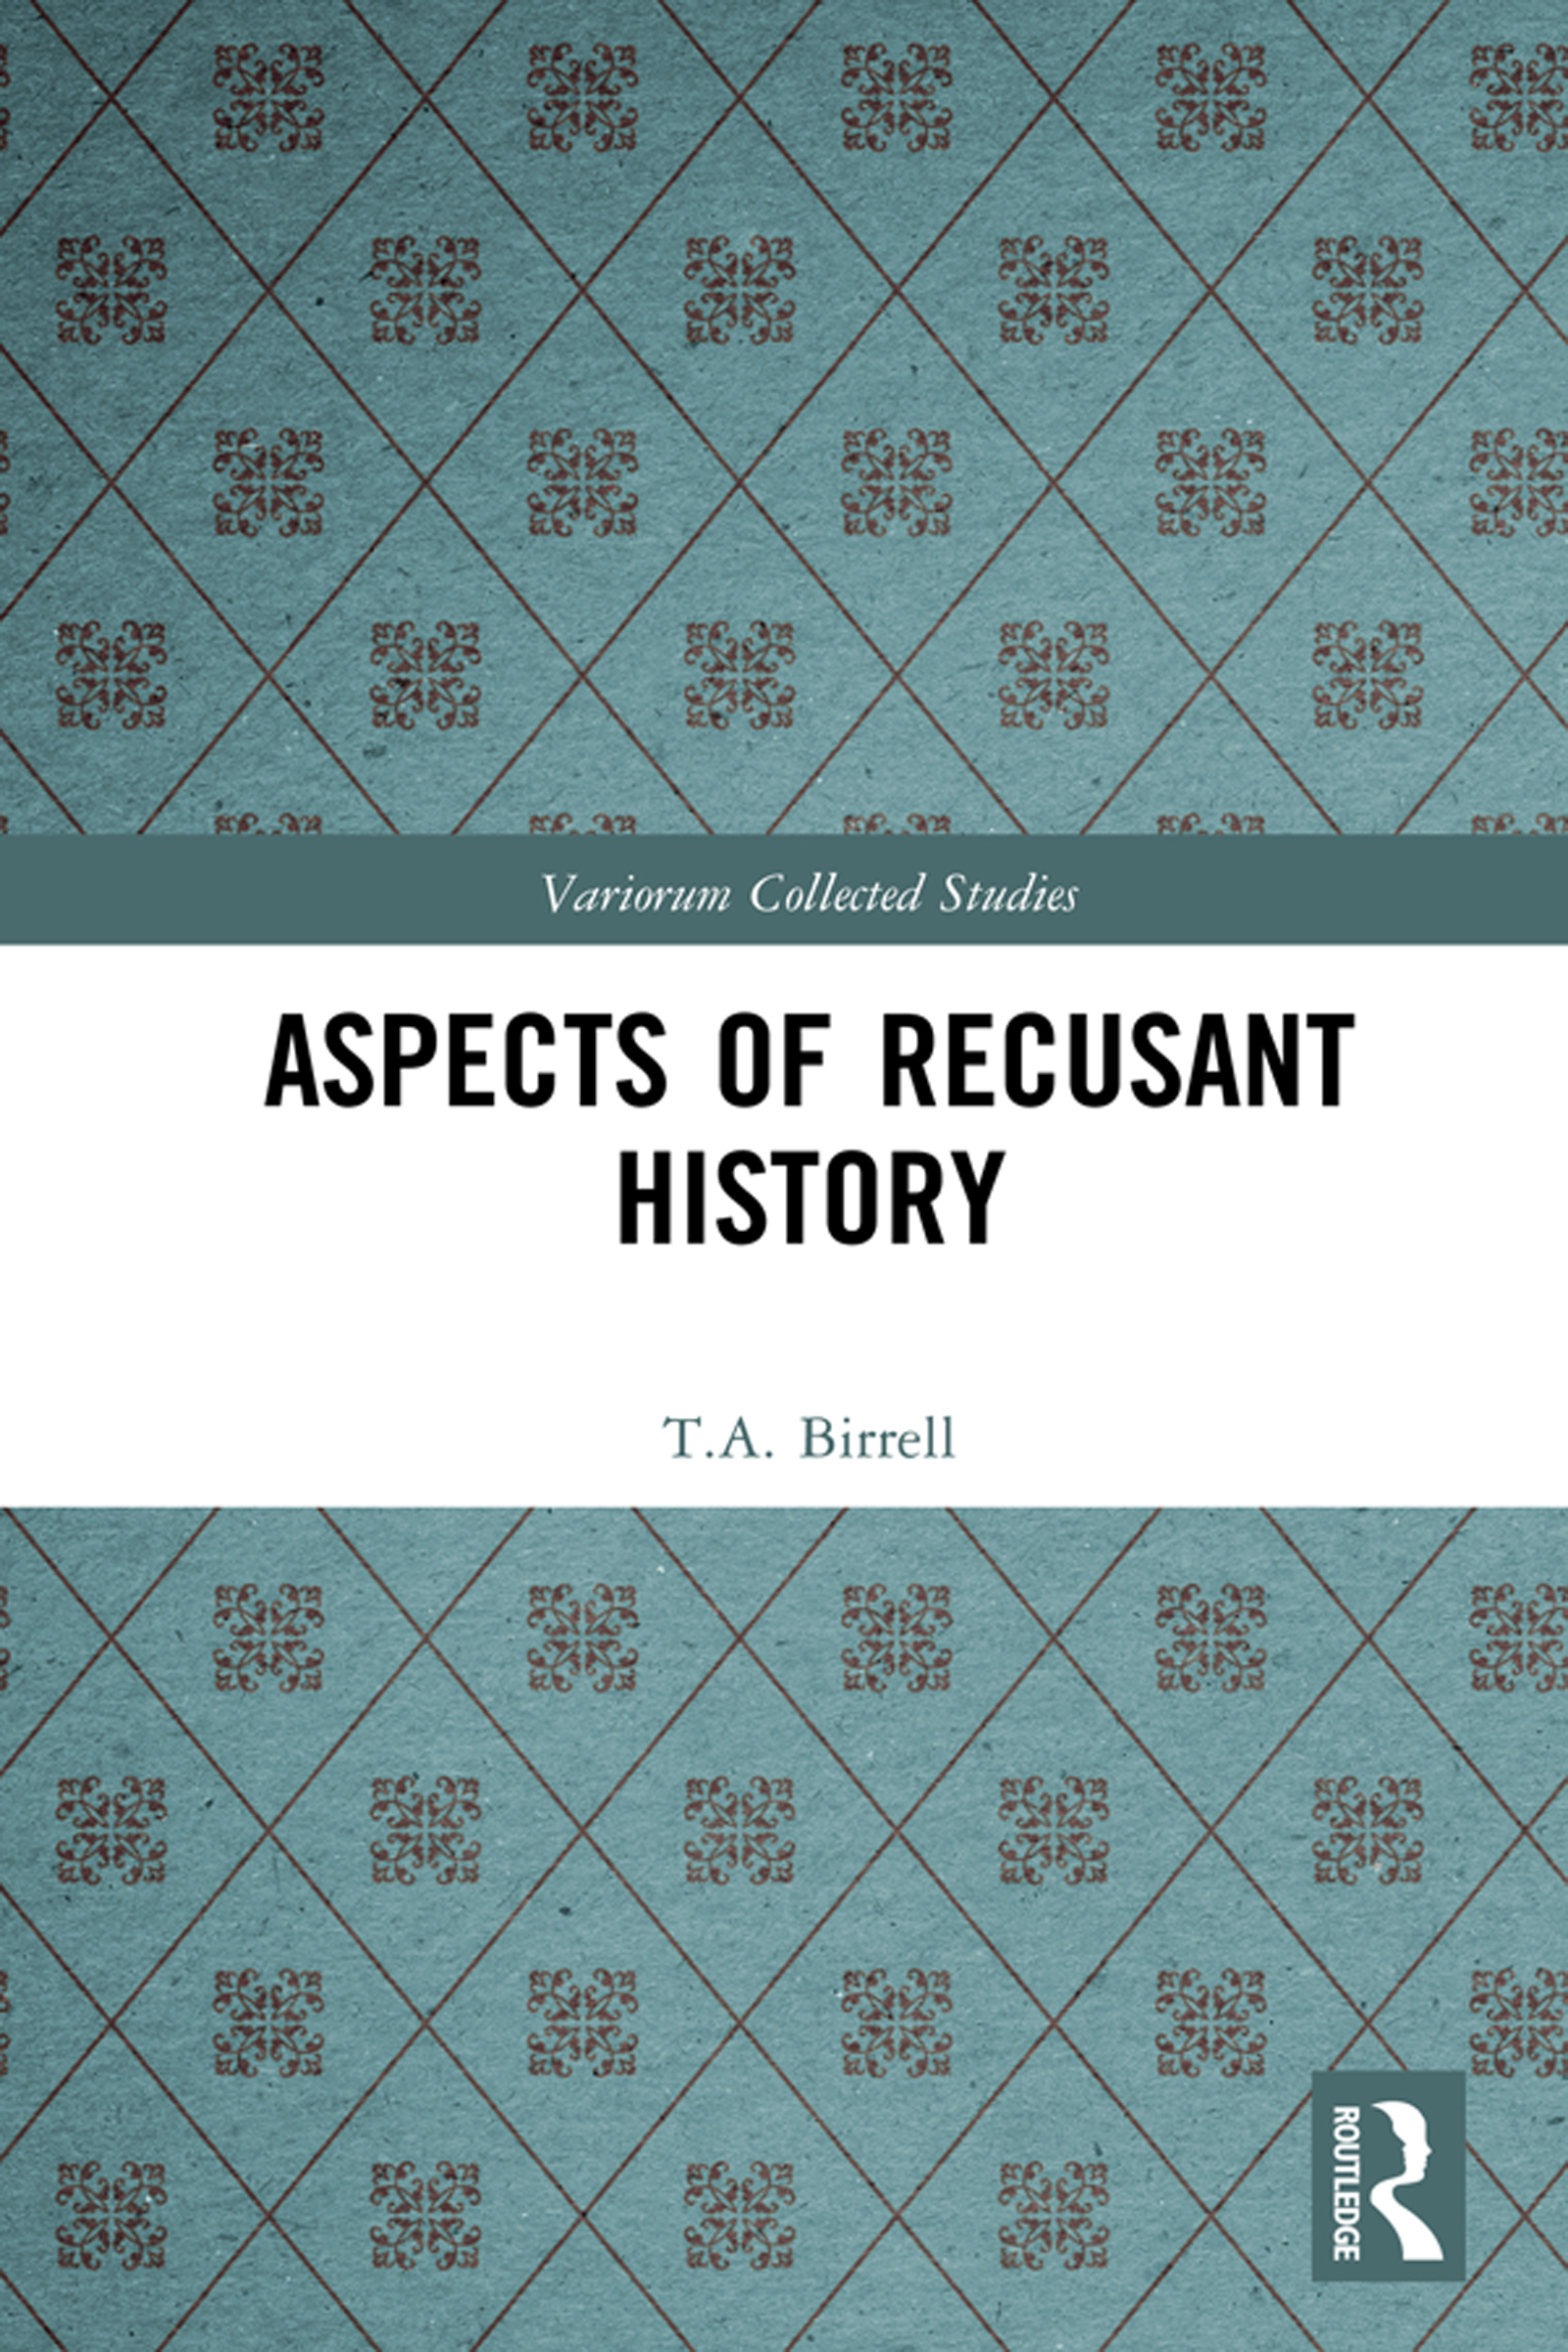 Aspects of Recusant History